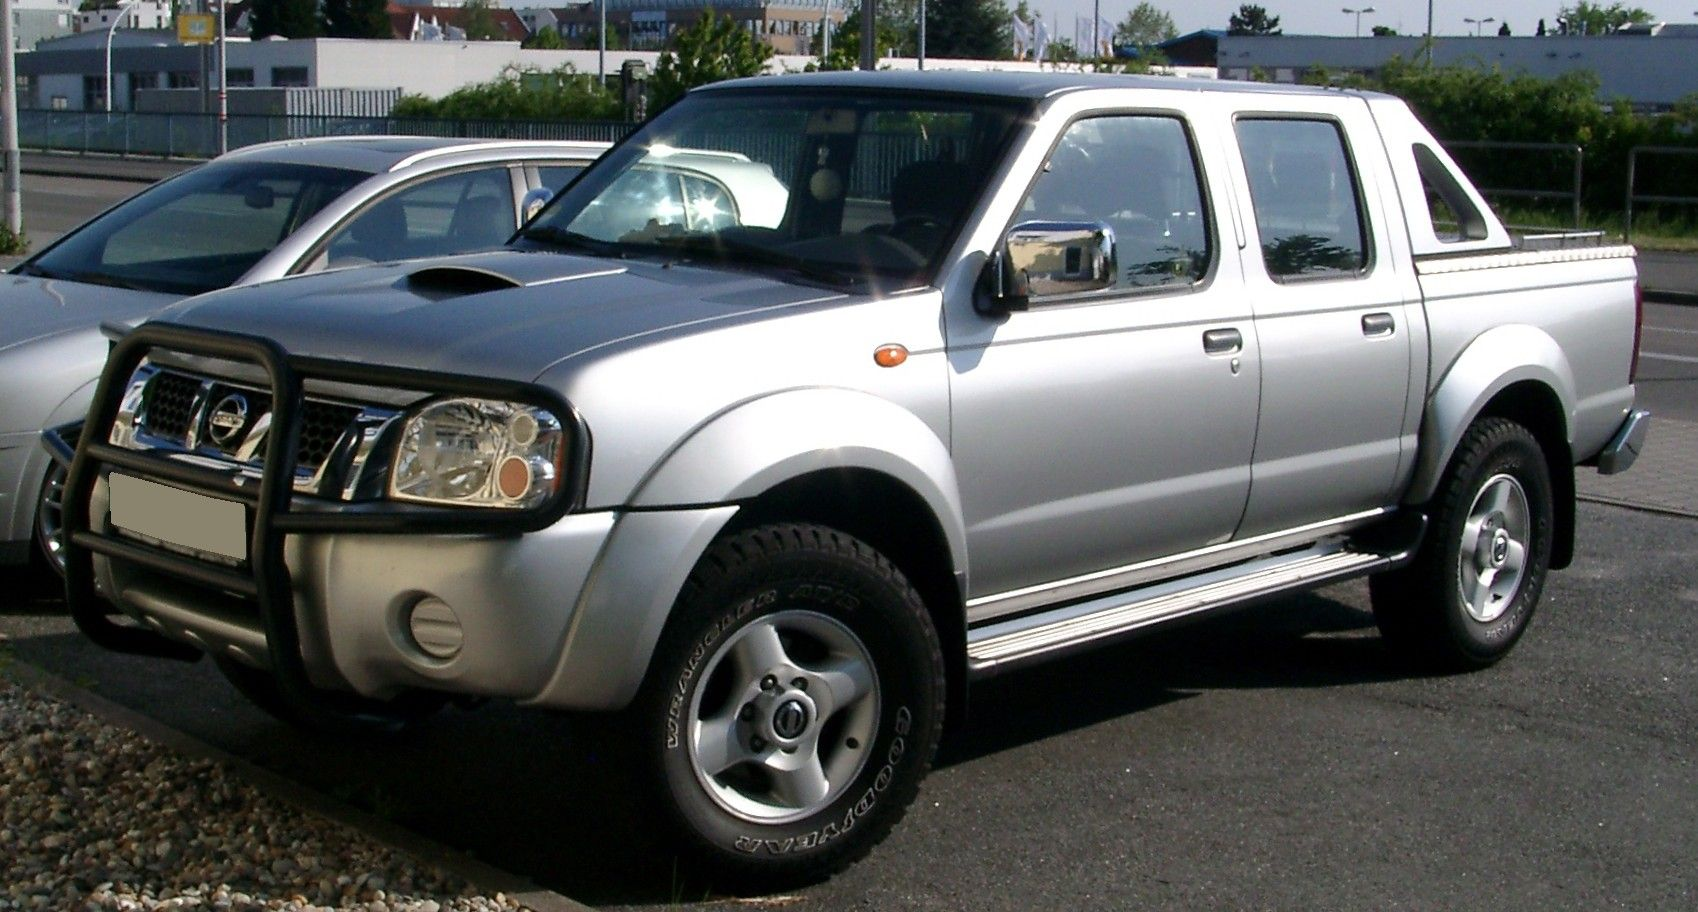 Cheapest Online Prices On Nissan Navara Engines For Sale Online By Engine Fitters Nissan Nissannavara Nissanengines Ht Nissan Navara Nissan Engines For Sale